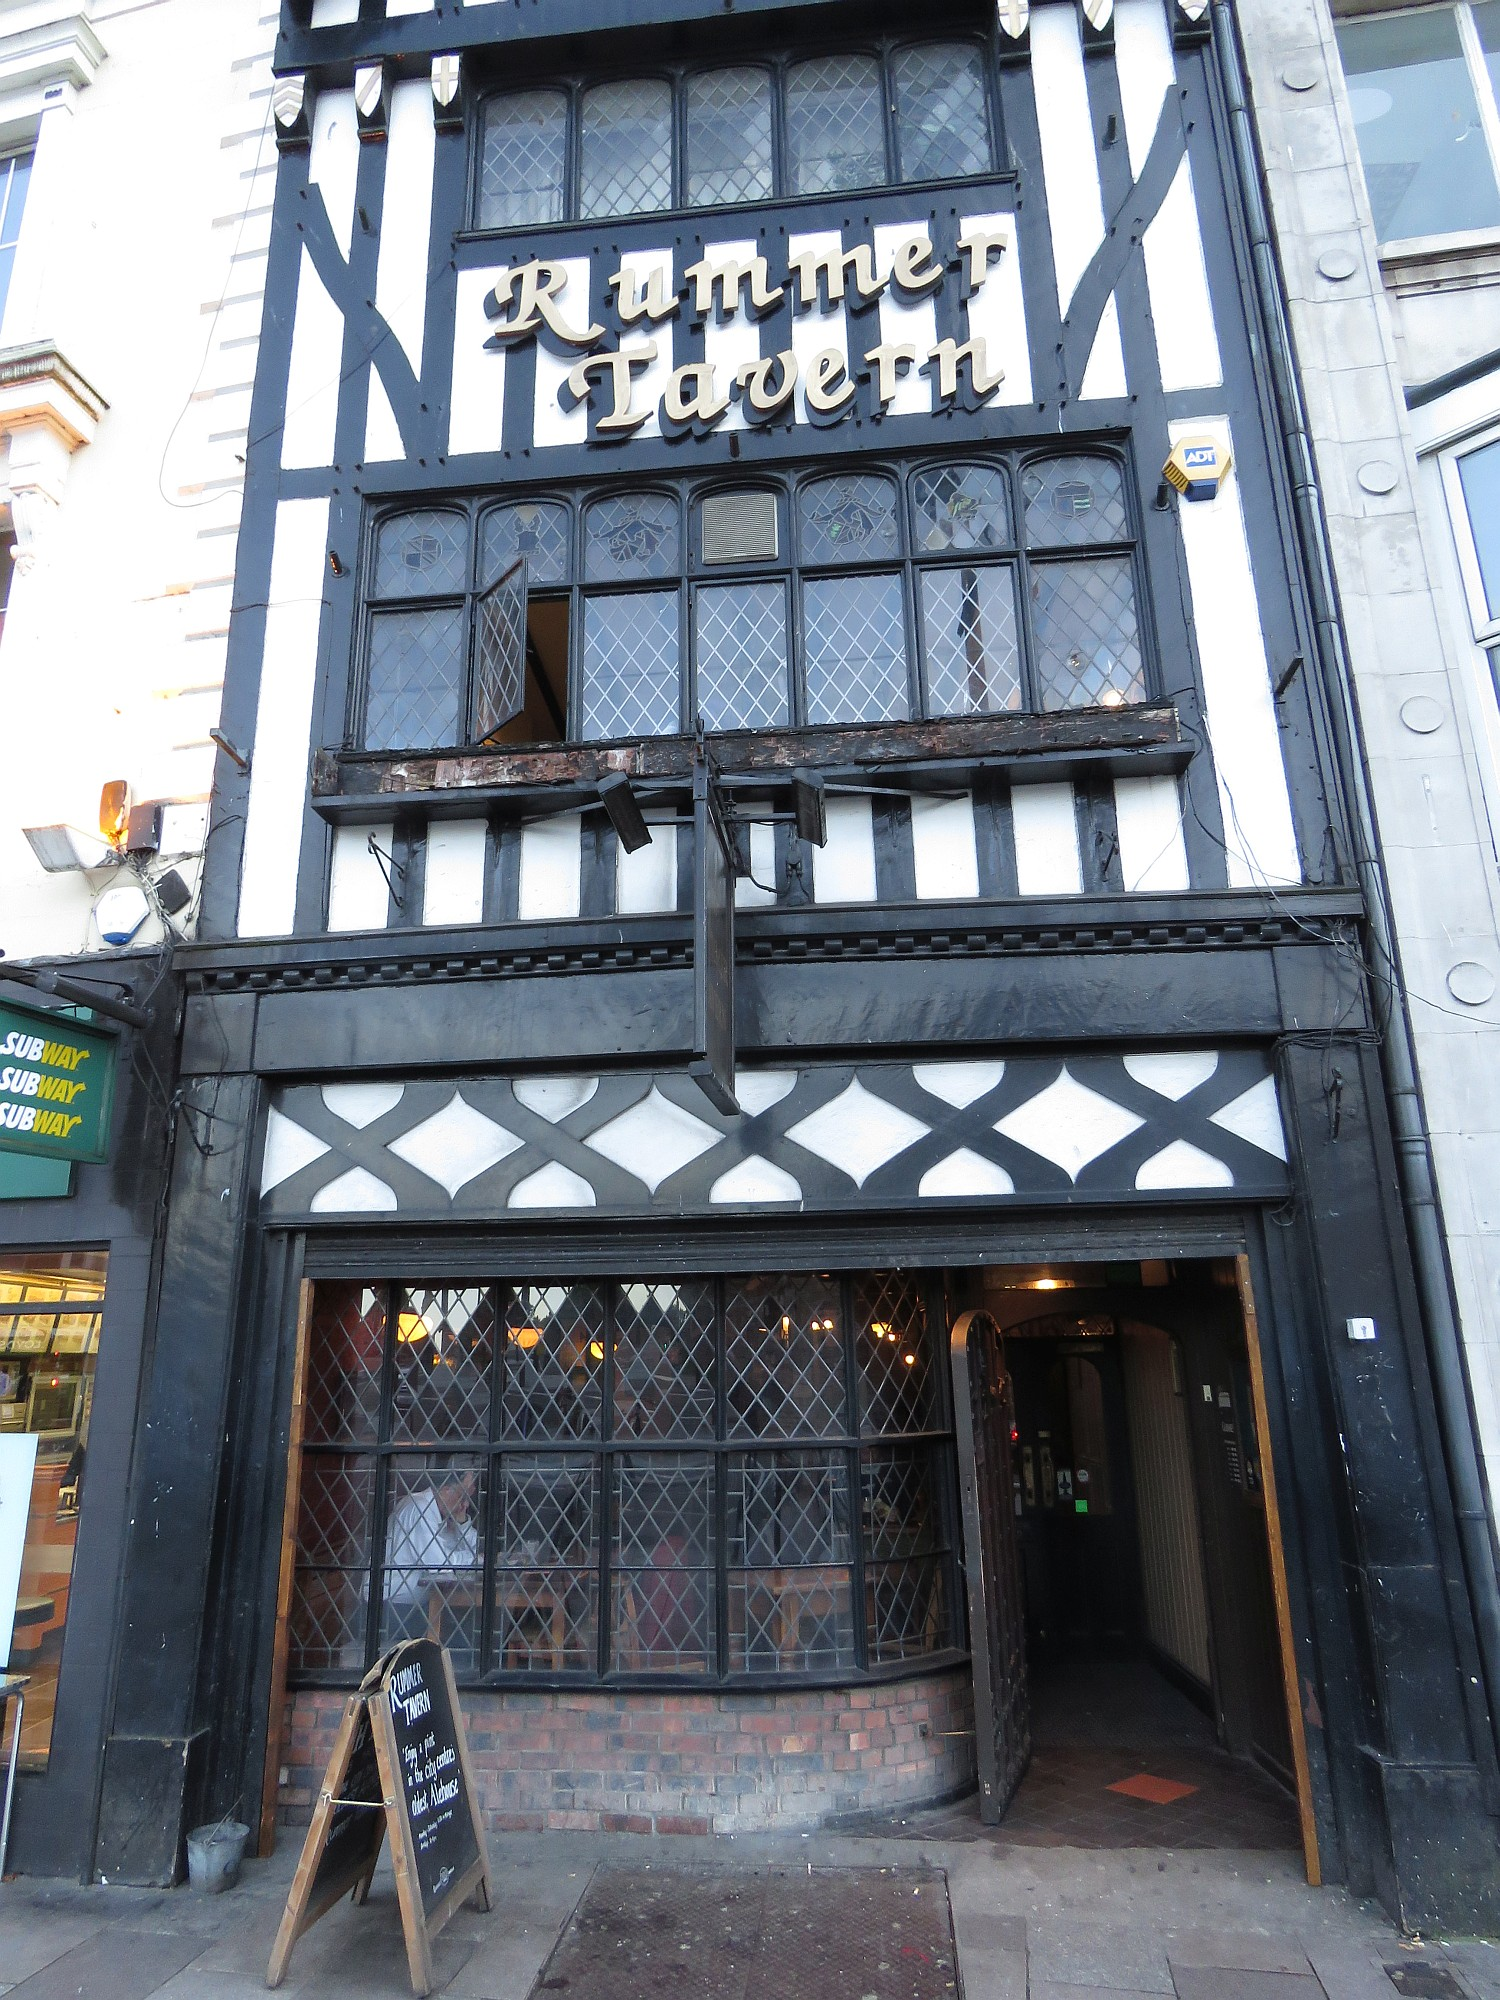 Rummer Pub, meeting place of Polyphony down the Pub